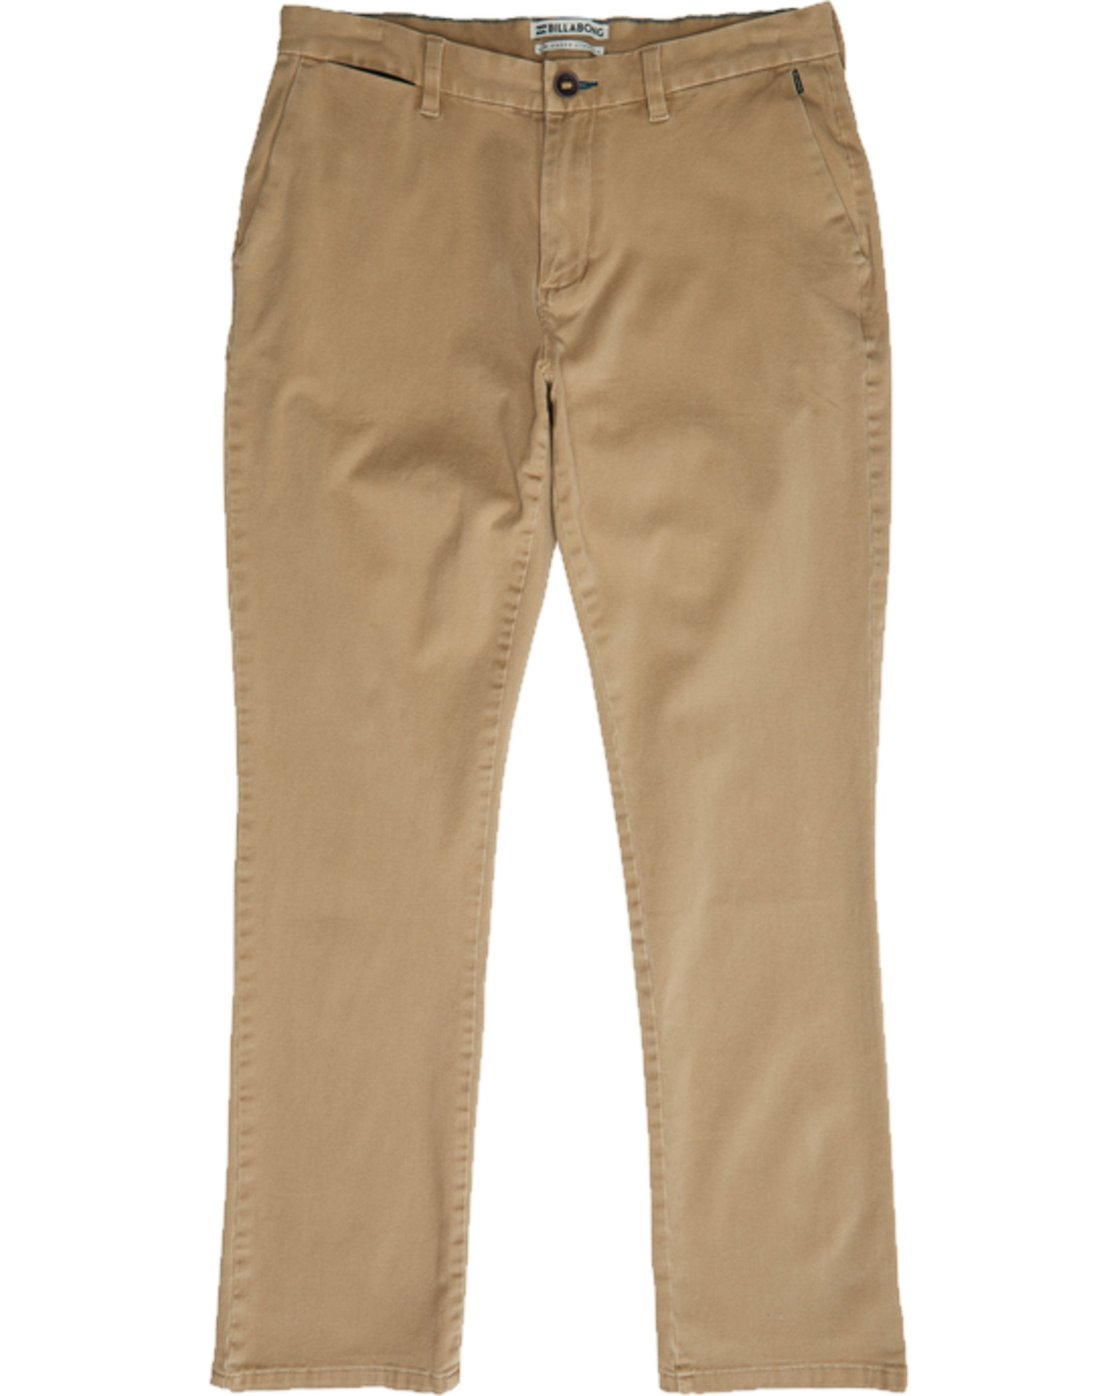 Billabong Mens New Order Chino Pant